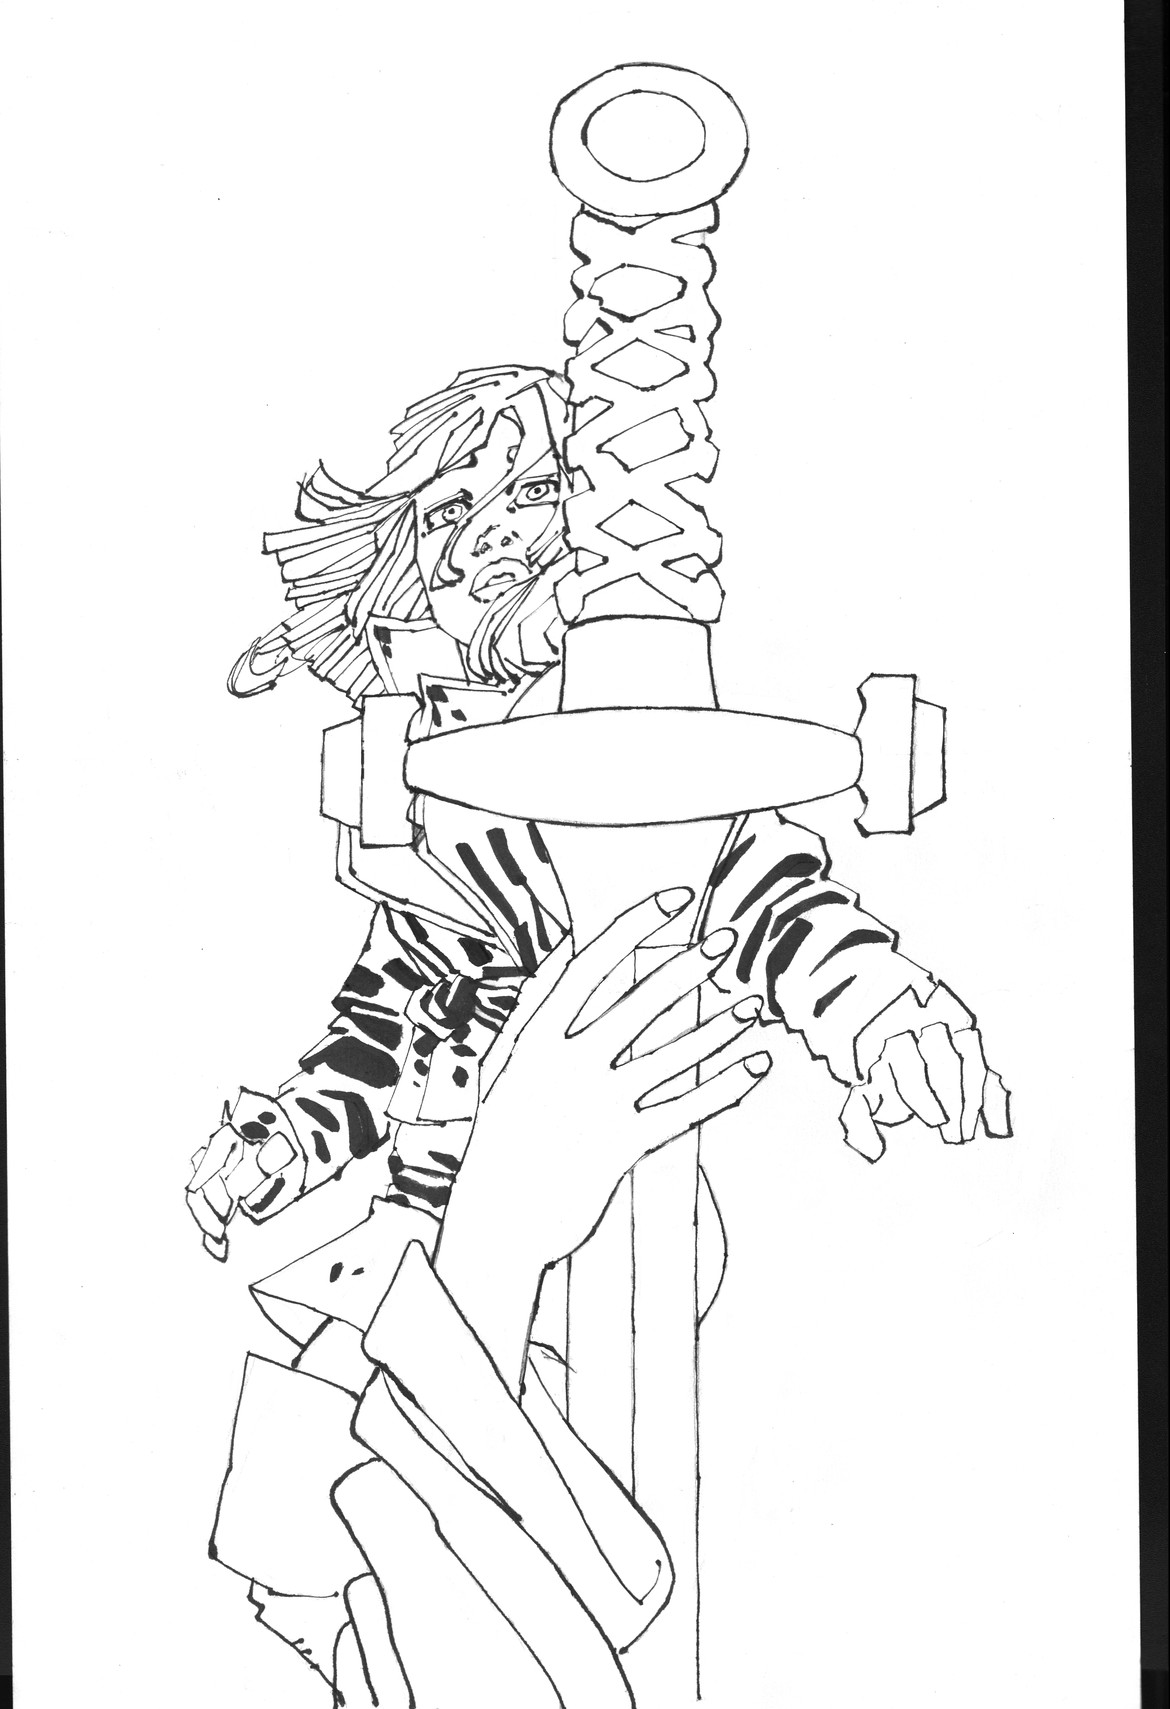 CURSED illustration by Frank Miller